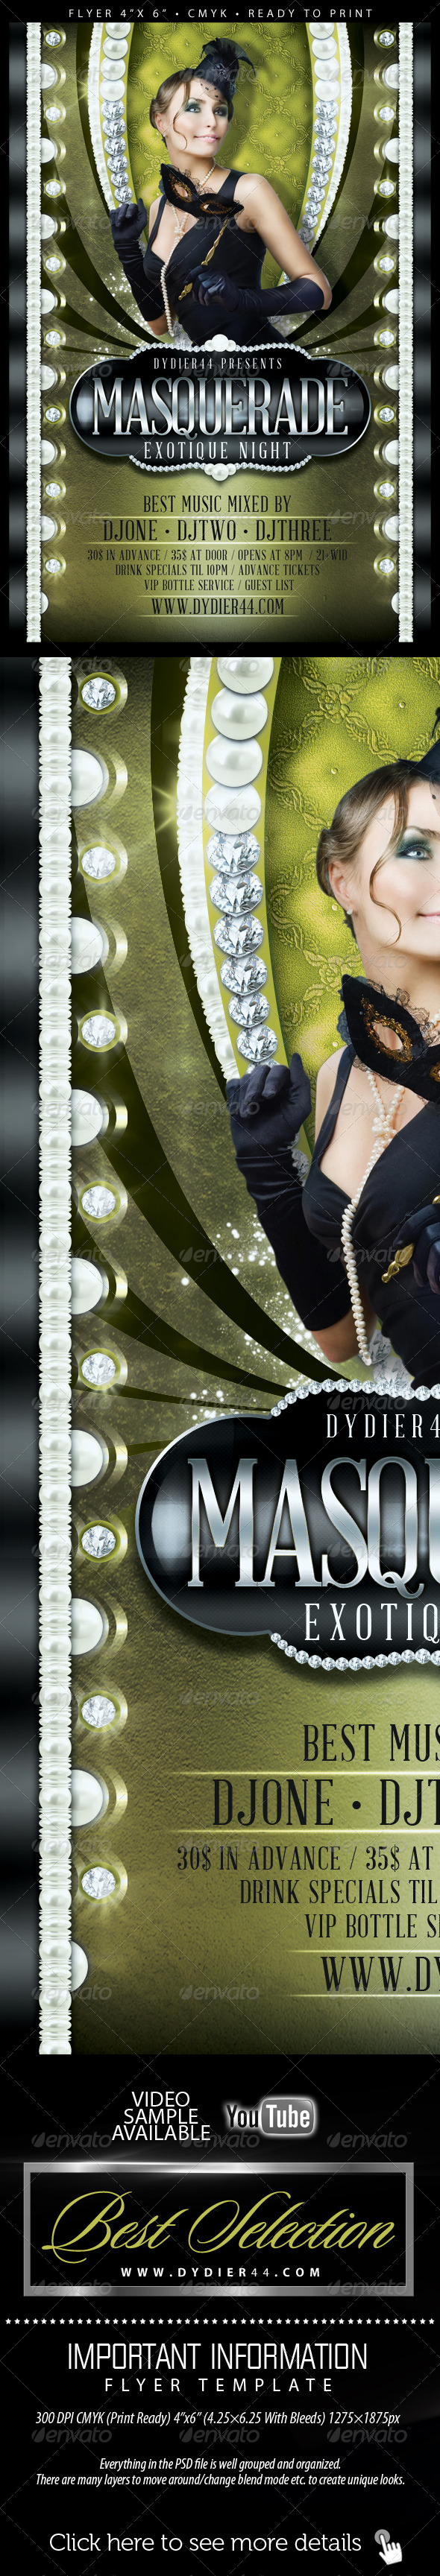 Masquerade (Flyer Template 4x6) - Flyers Print Templates